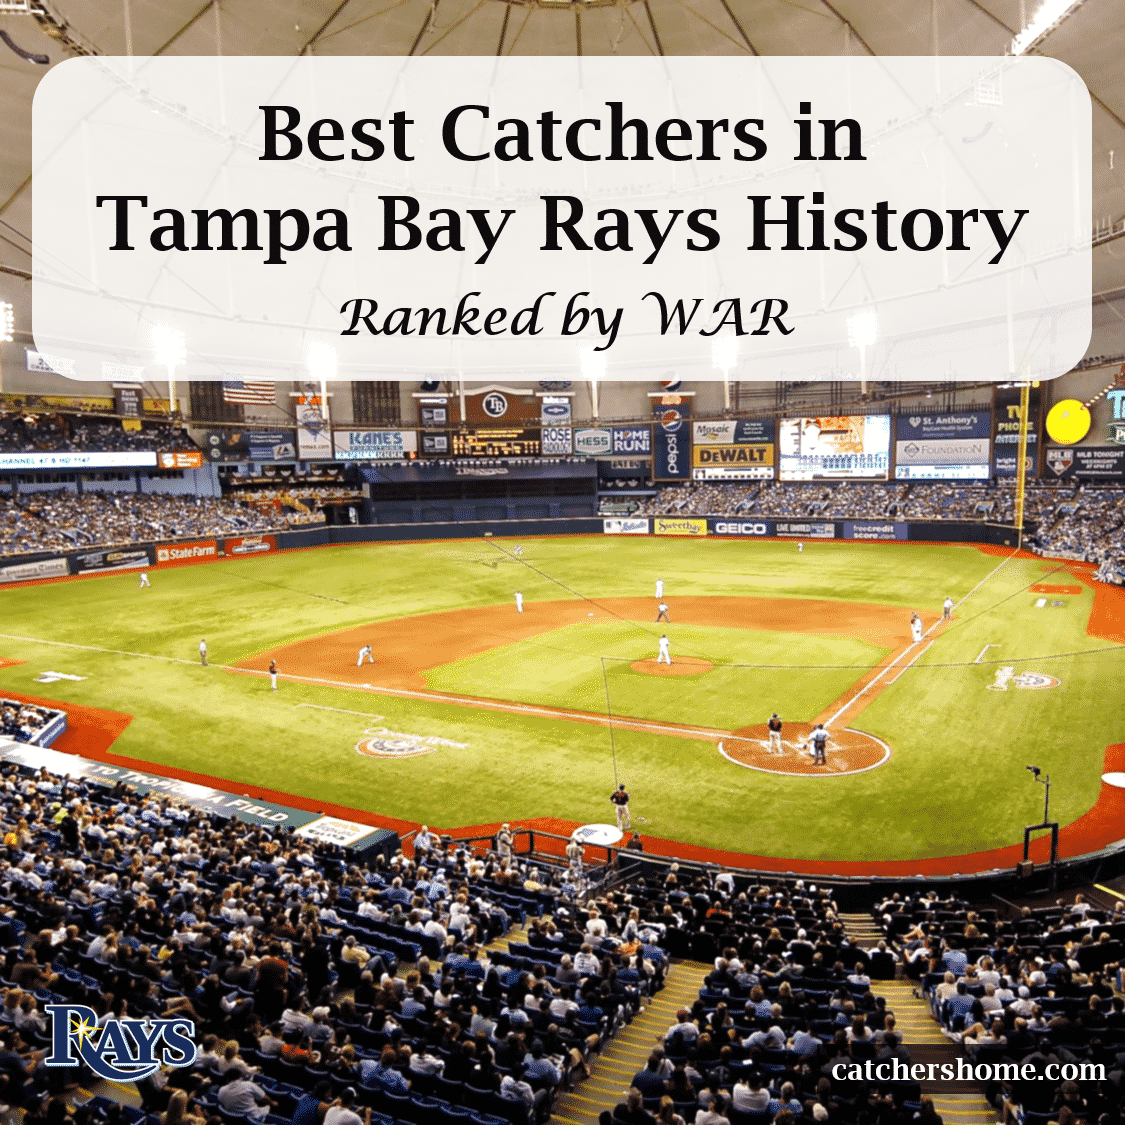 Best Tampa Bay Rays catchers in team history as ranked by WAR, Tropicana Field image